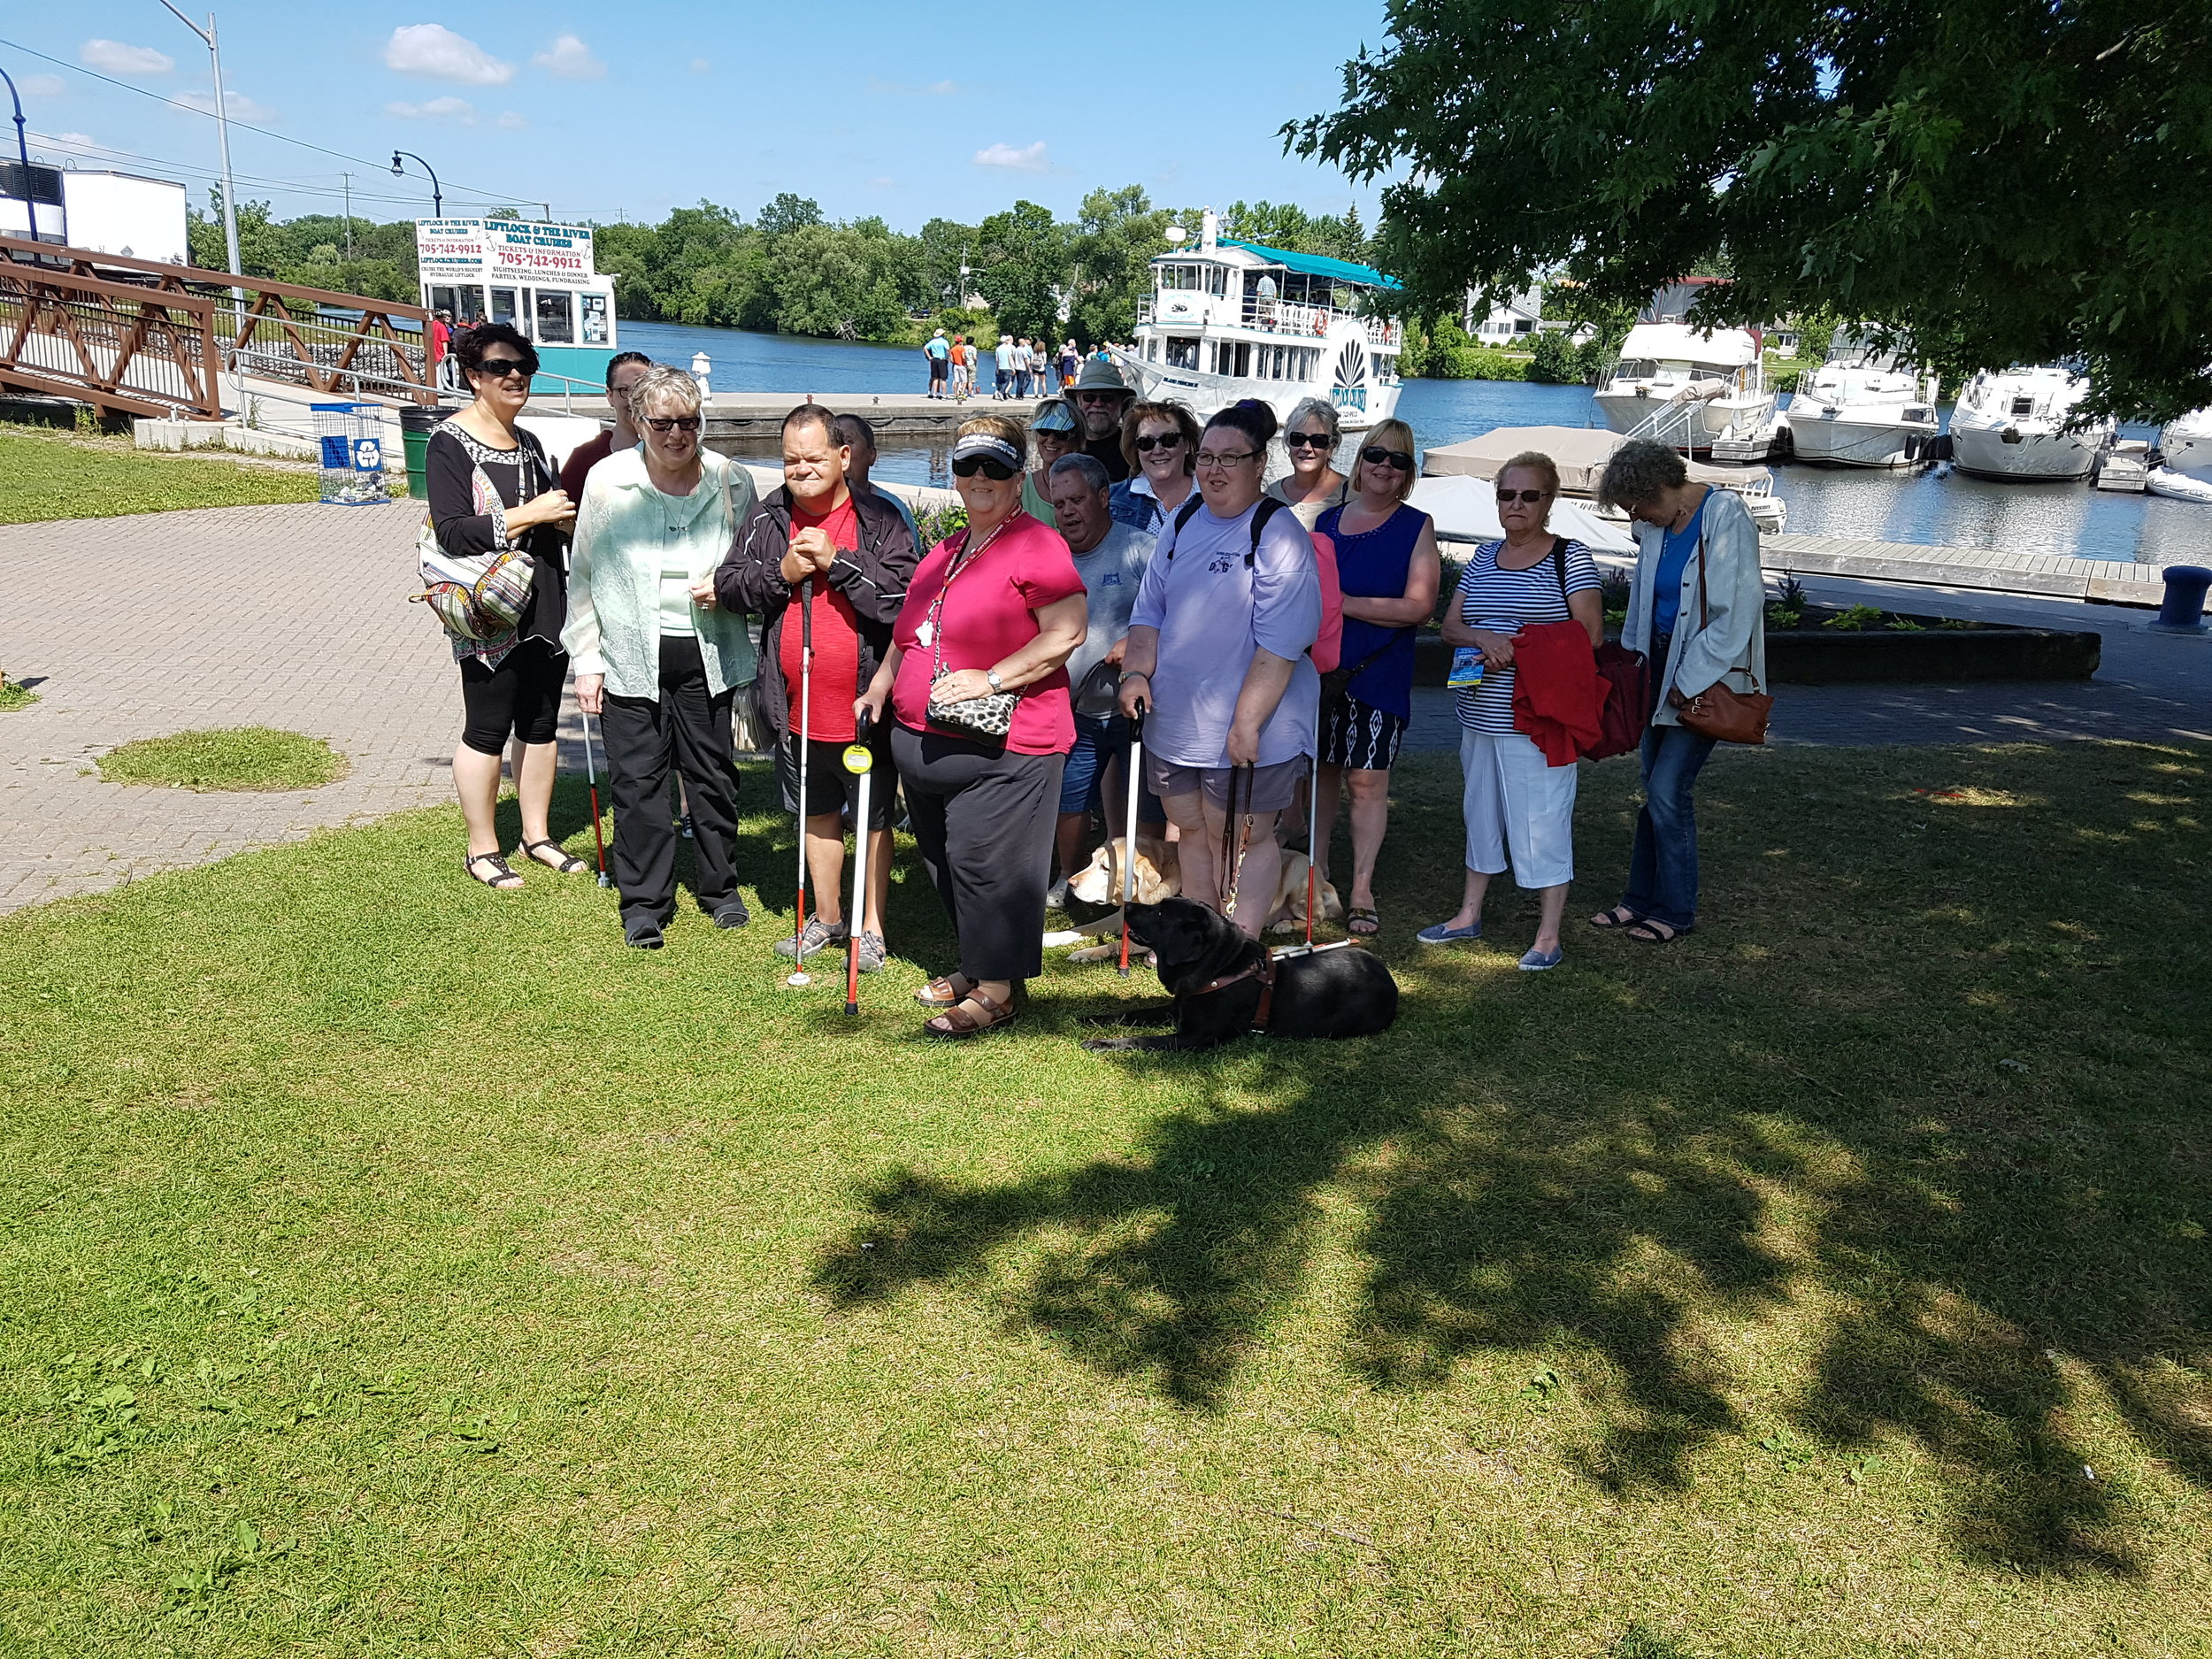 Members and volunteers of the Peterborough chapter standing on the grass in front of little lake and Liftlock Cruises.